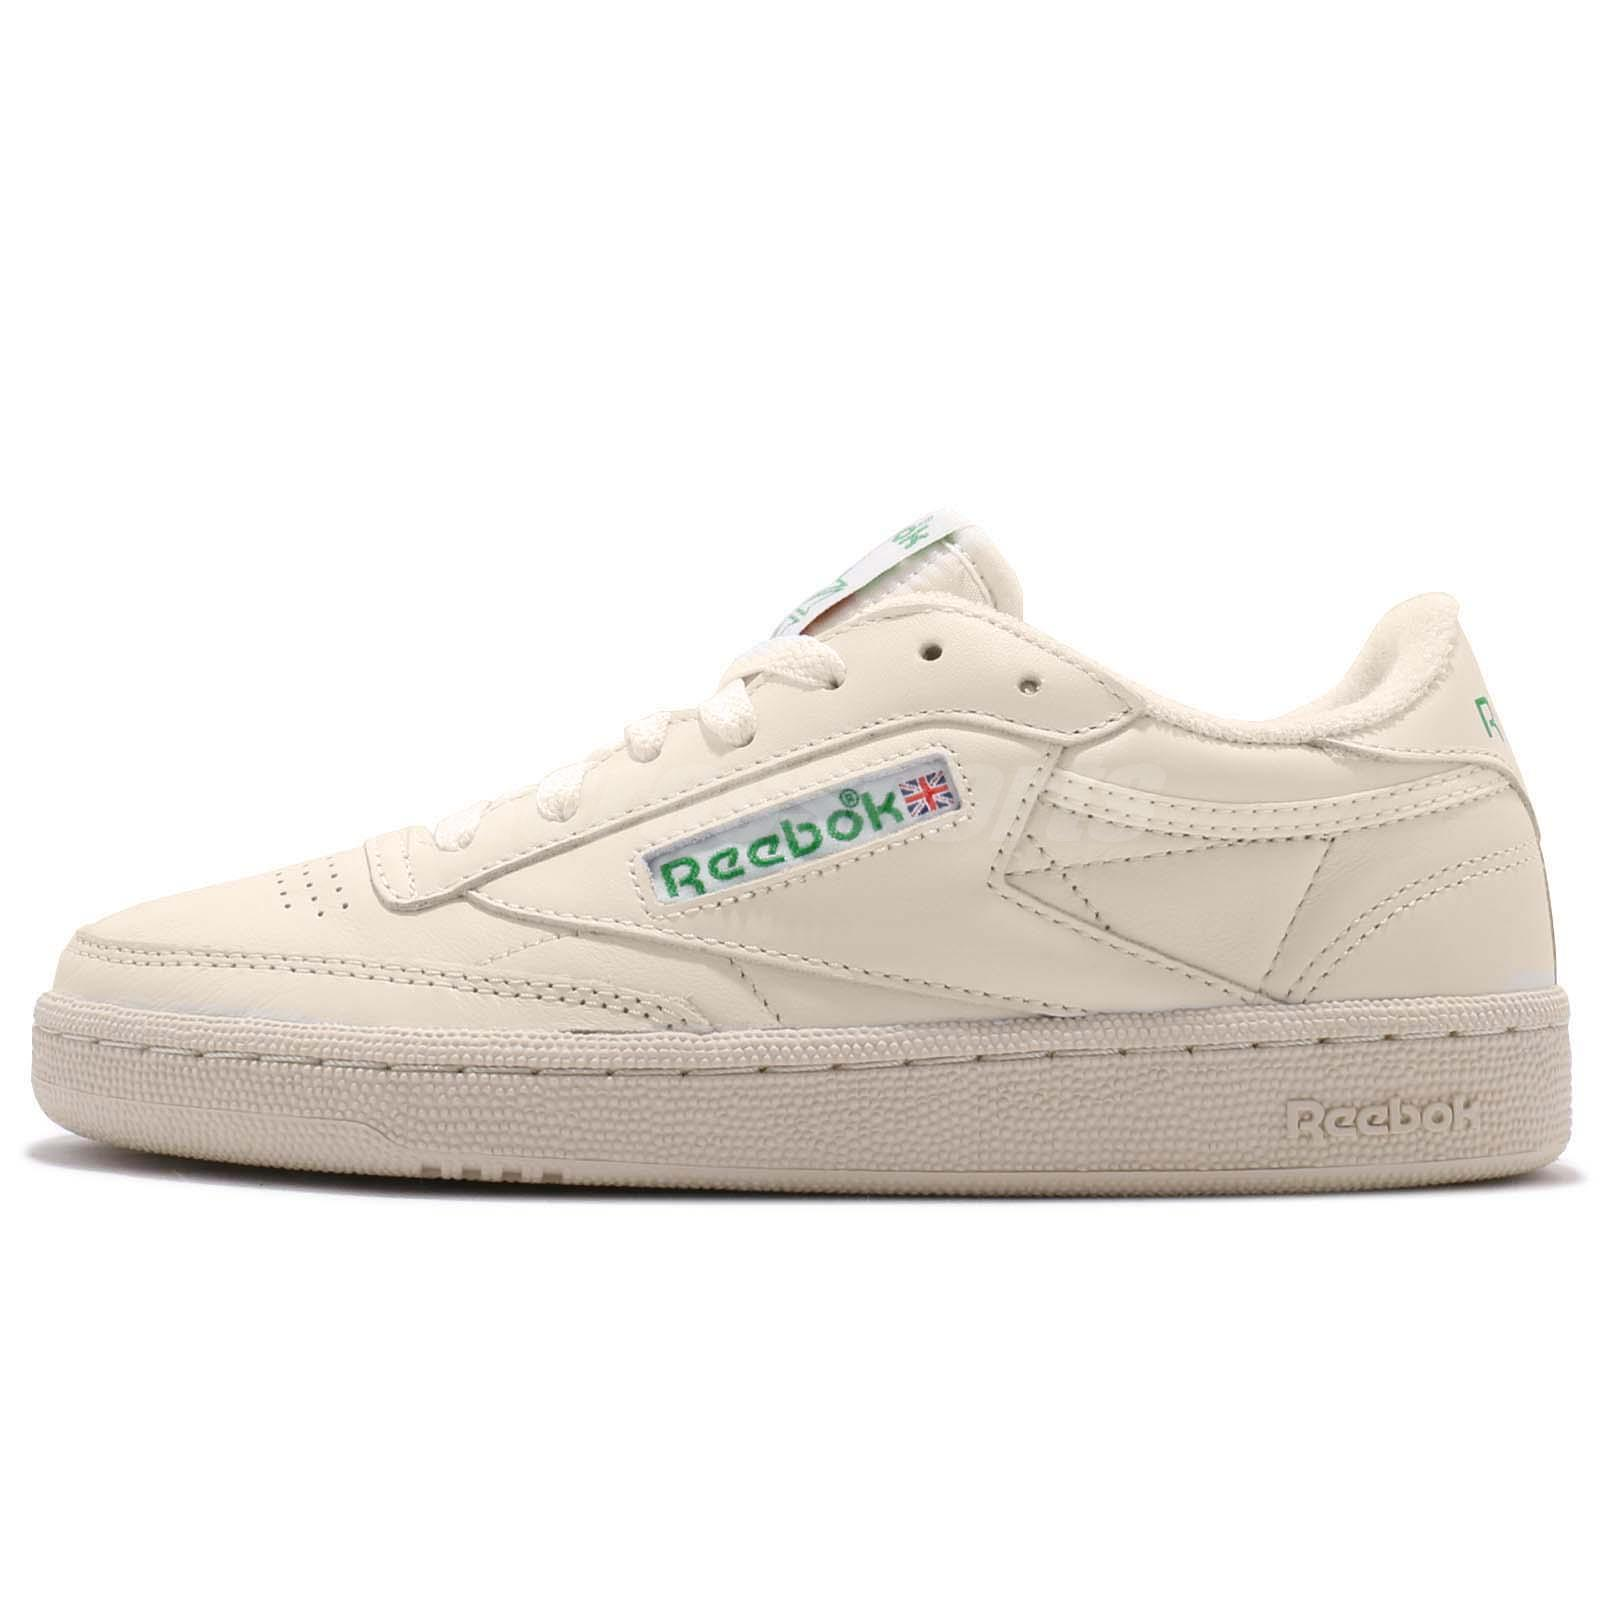 906d5c20869fc Reebok Club C 85 Vintage Leather Chalk Green Women Classic Shoes Sneakers  BS8242